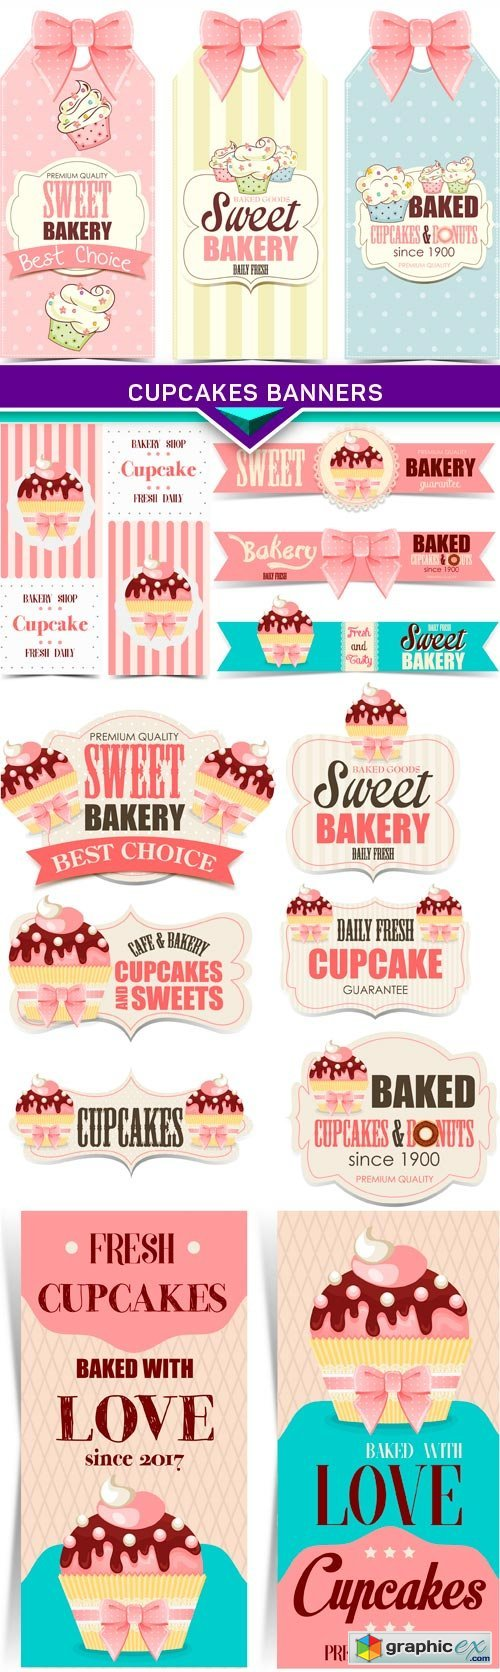 Cupcakes banners 5X EPS